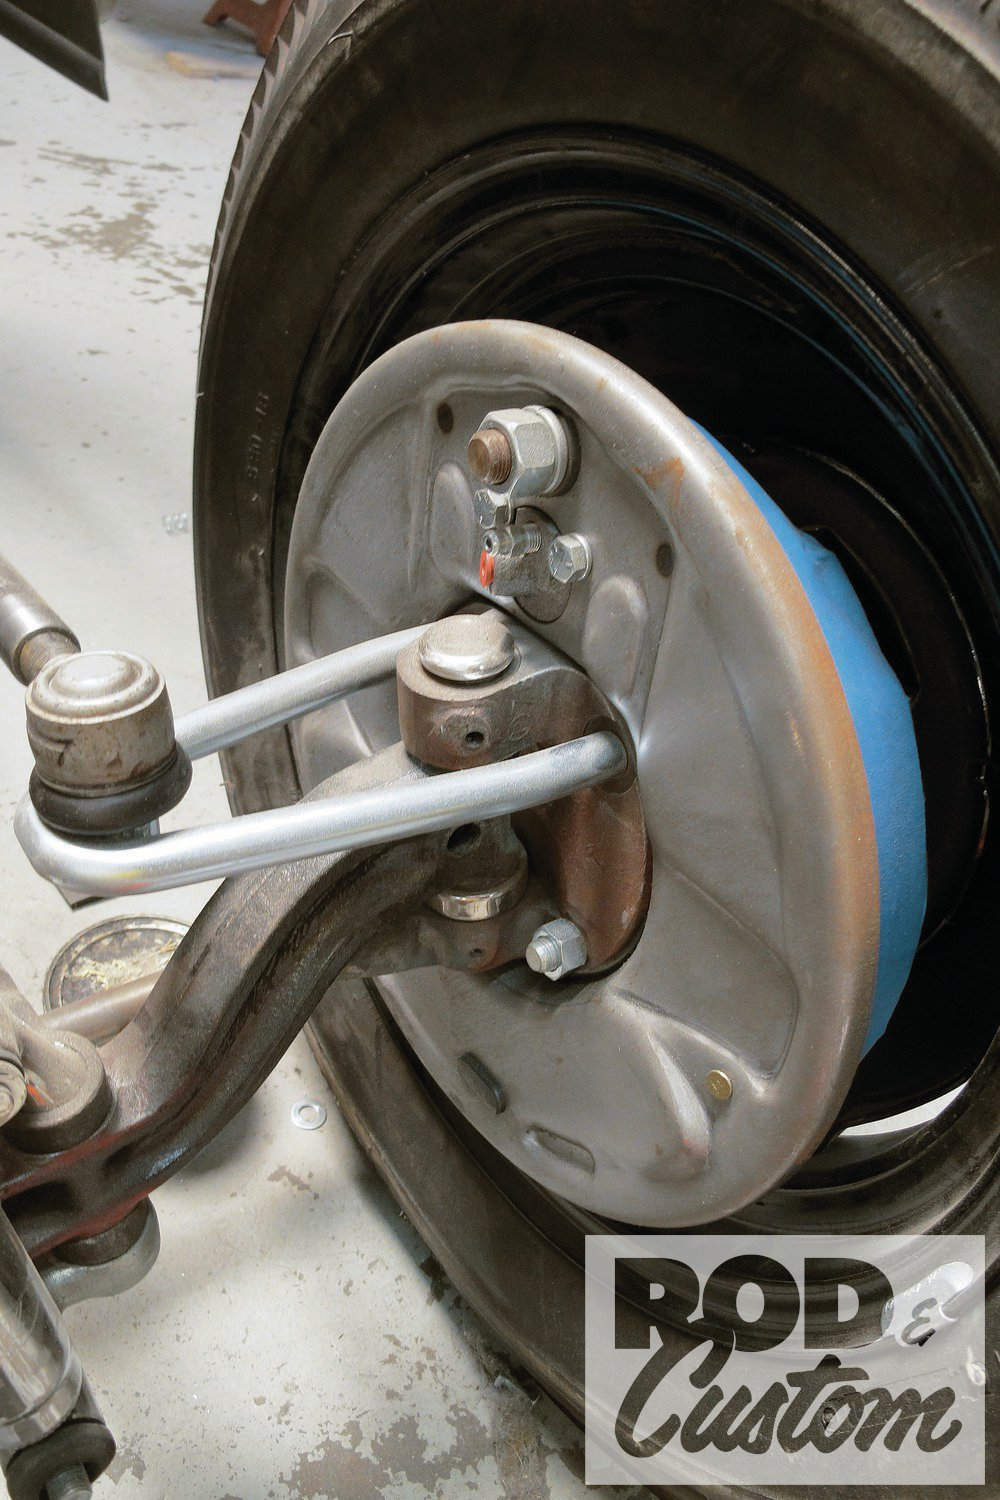 4. At the time I was about to perform the spindle modification on the '33, Circle City Hot Rods had recently completed a similar conversion on a customer's '31 roadster, shown here with original Lincoln backing plates (notice more detail depth than Speedway's) and stock '37-41 Ford spindles.